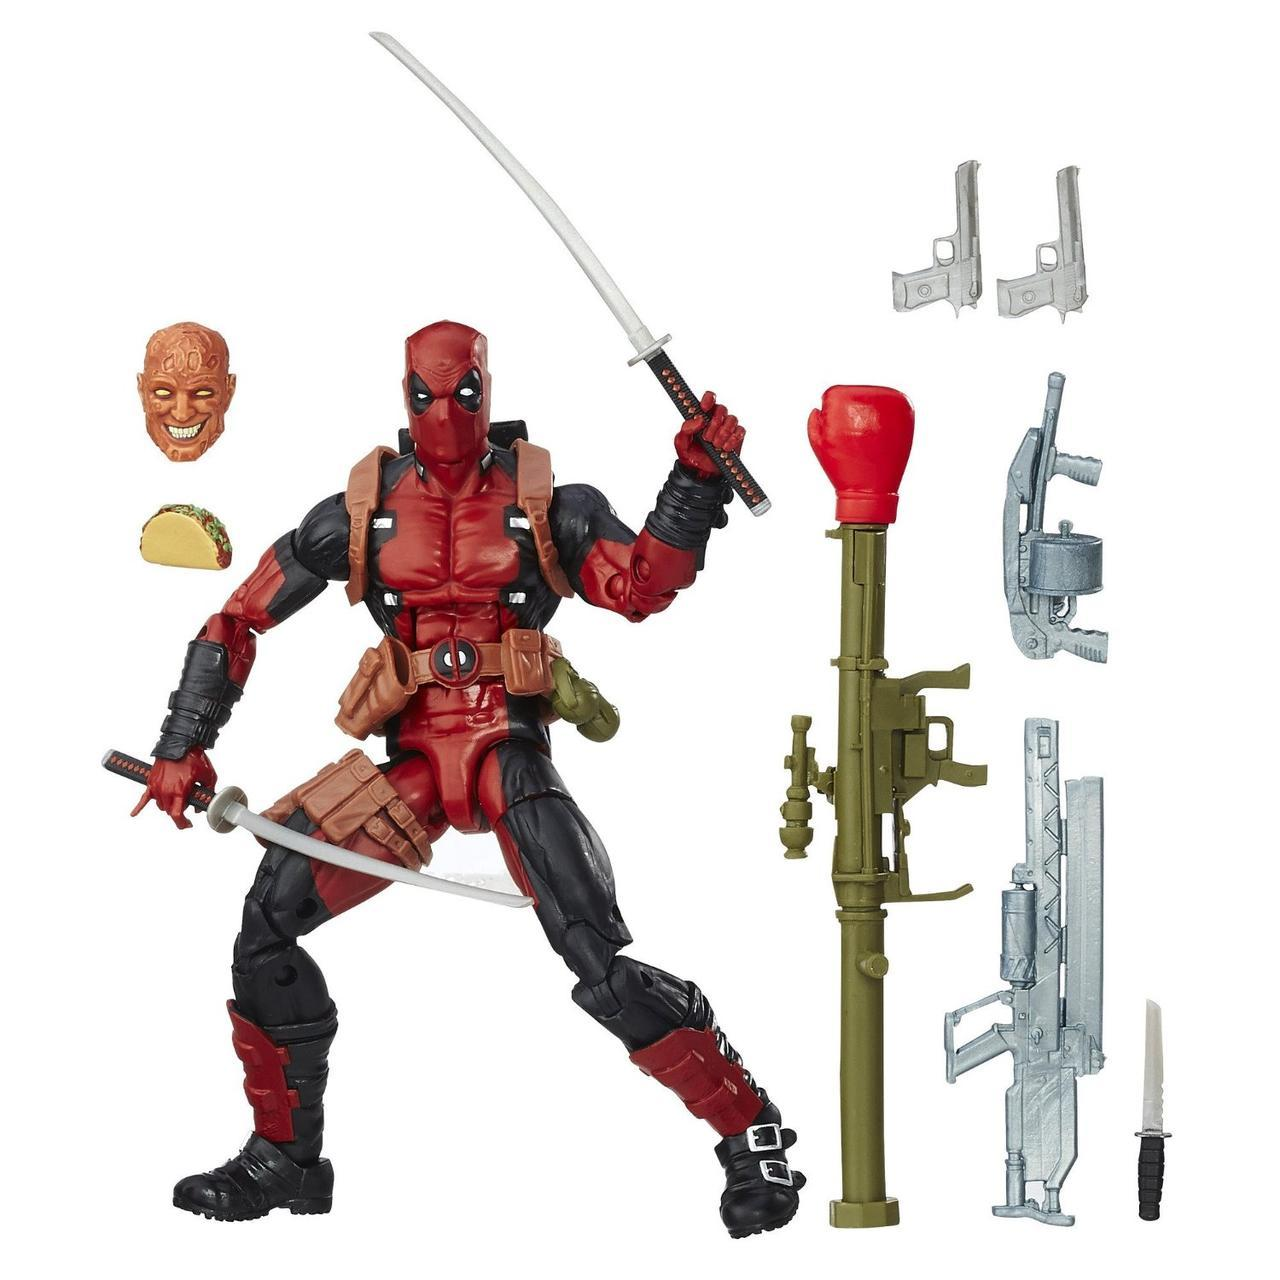 Фигурка Дэдпул Hasbro, Люди Икс, Легенды Марвел 15 см - Deadpool, Marvel, X-Men, Legend Series